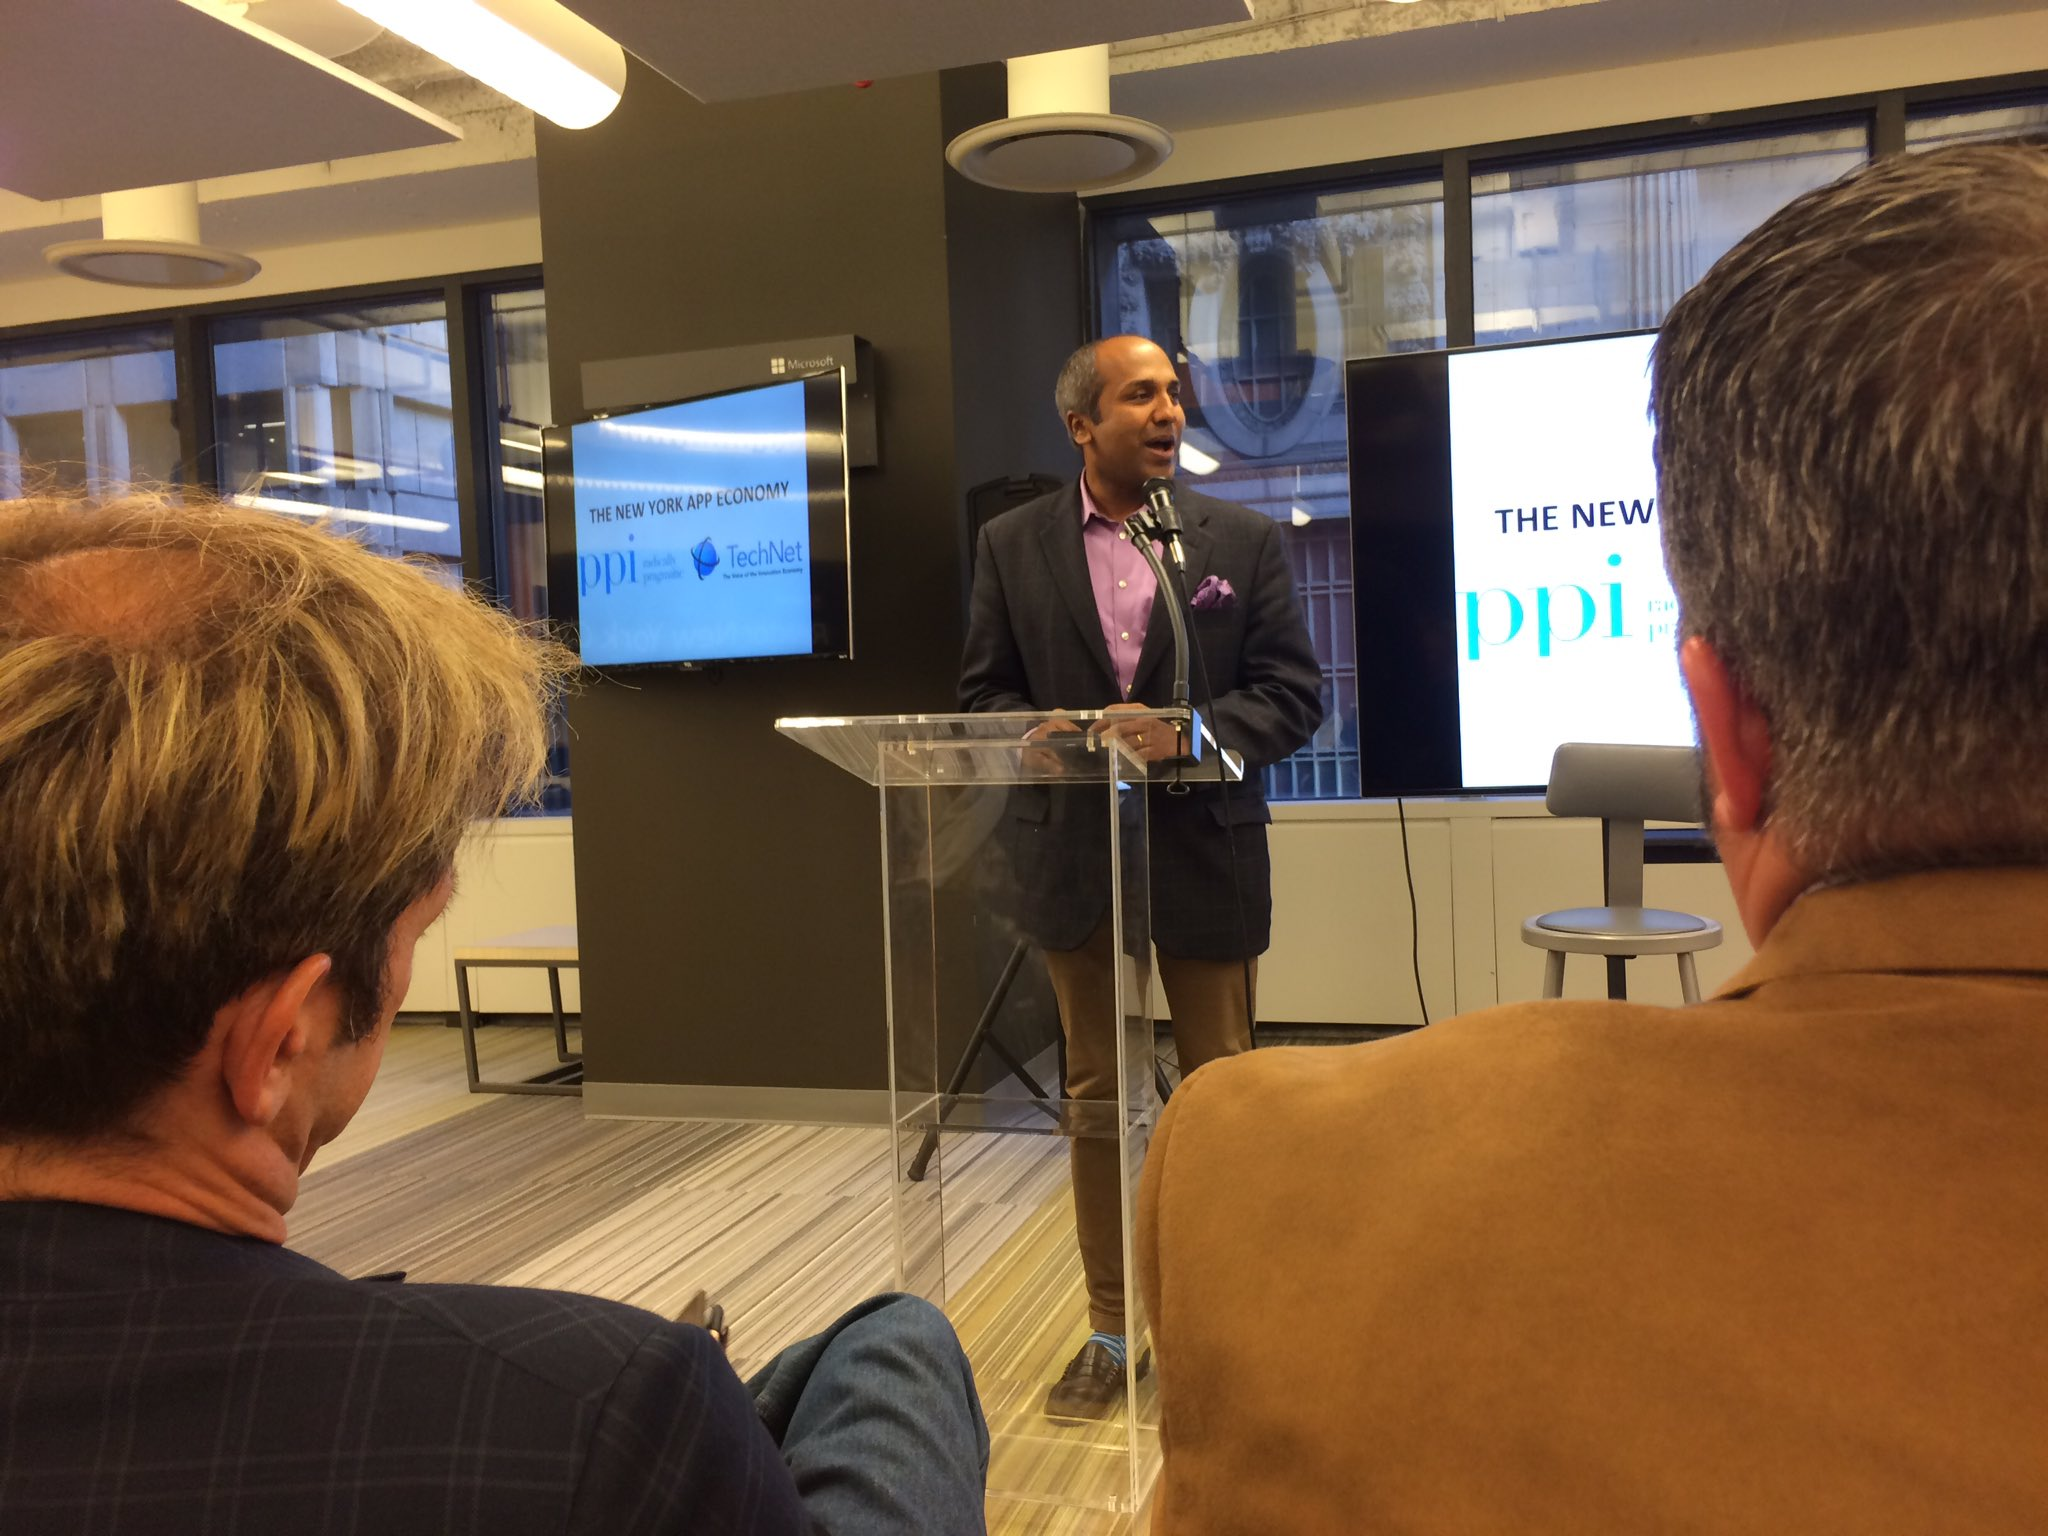 @sree Sreenivasan Chief Digital Officer, NYC: 1600 public data sets available for #appeconomy innovation #rewrite @CAinc https://t.co/W0U8pZMyyQ